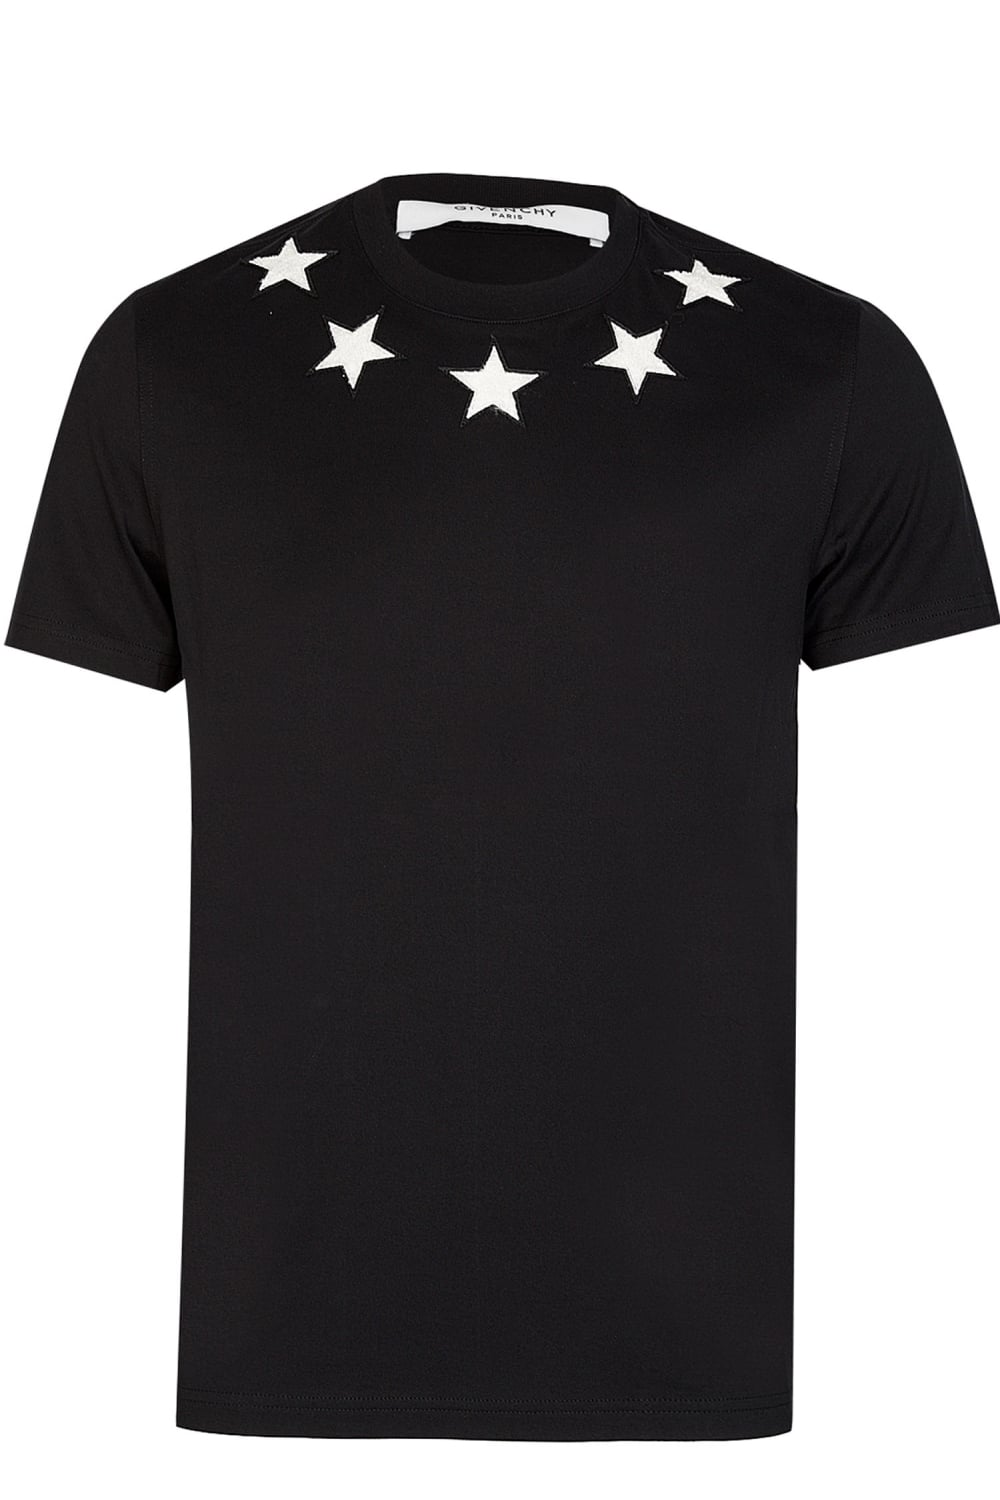 dc3003648789c1 GIVENCHY Givenchy 'Star' T-Shirt - Clothing from Circle Fashion UK